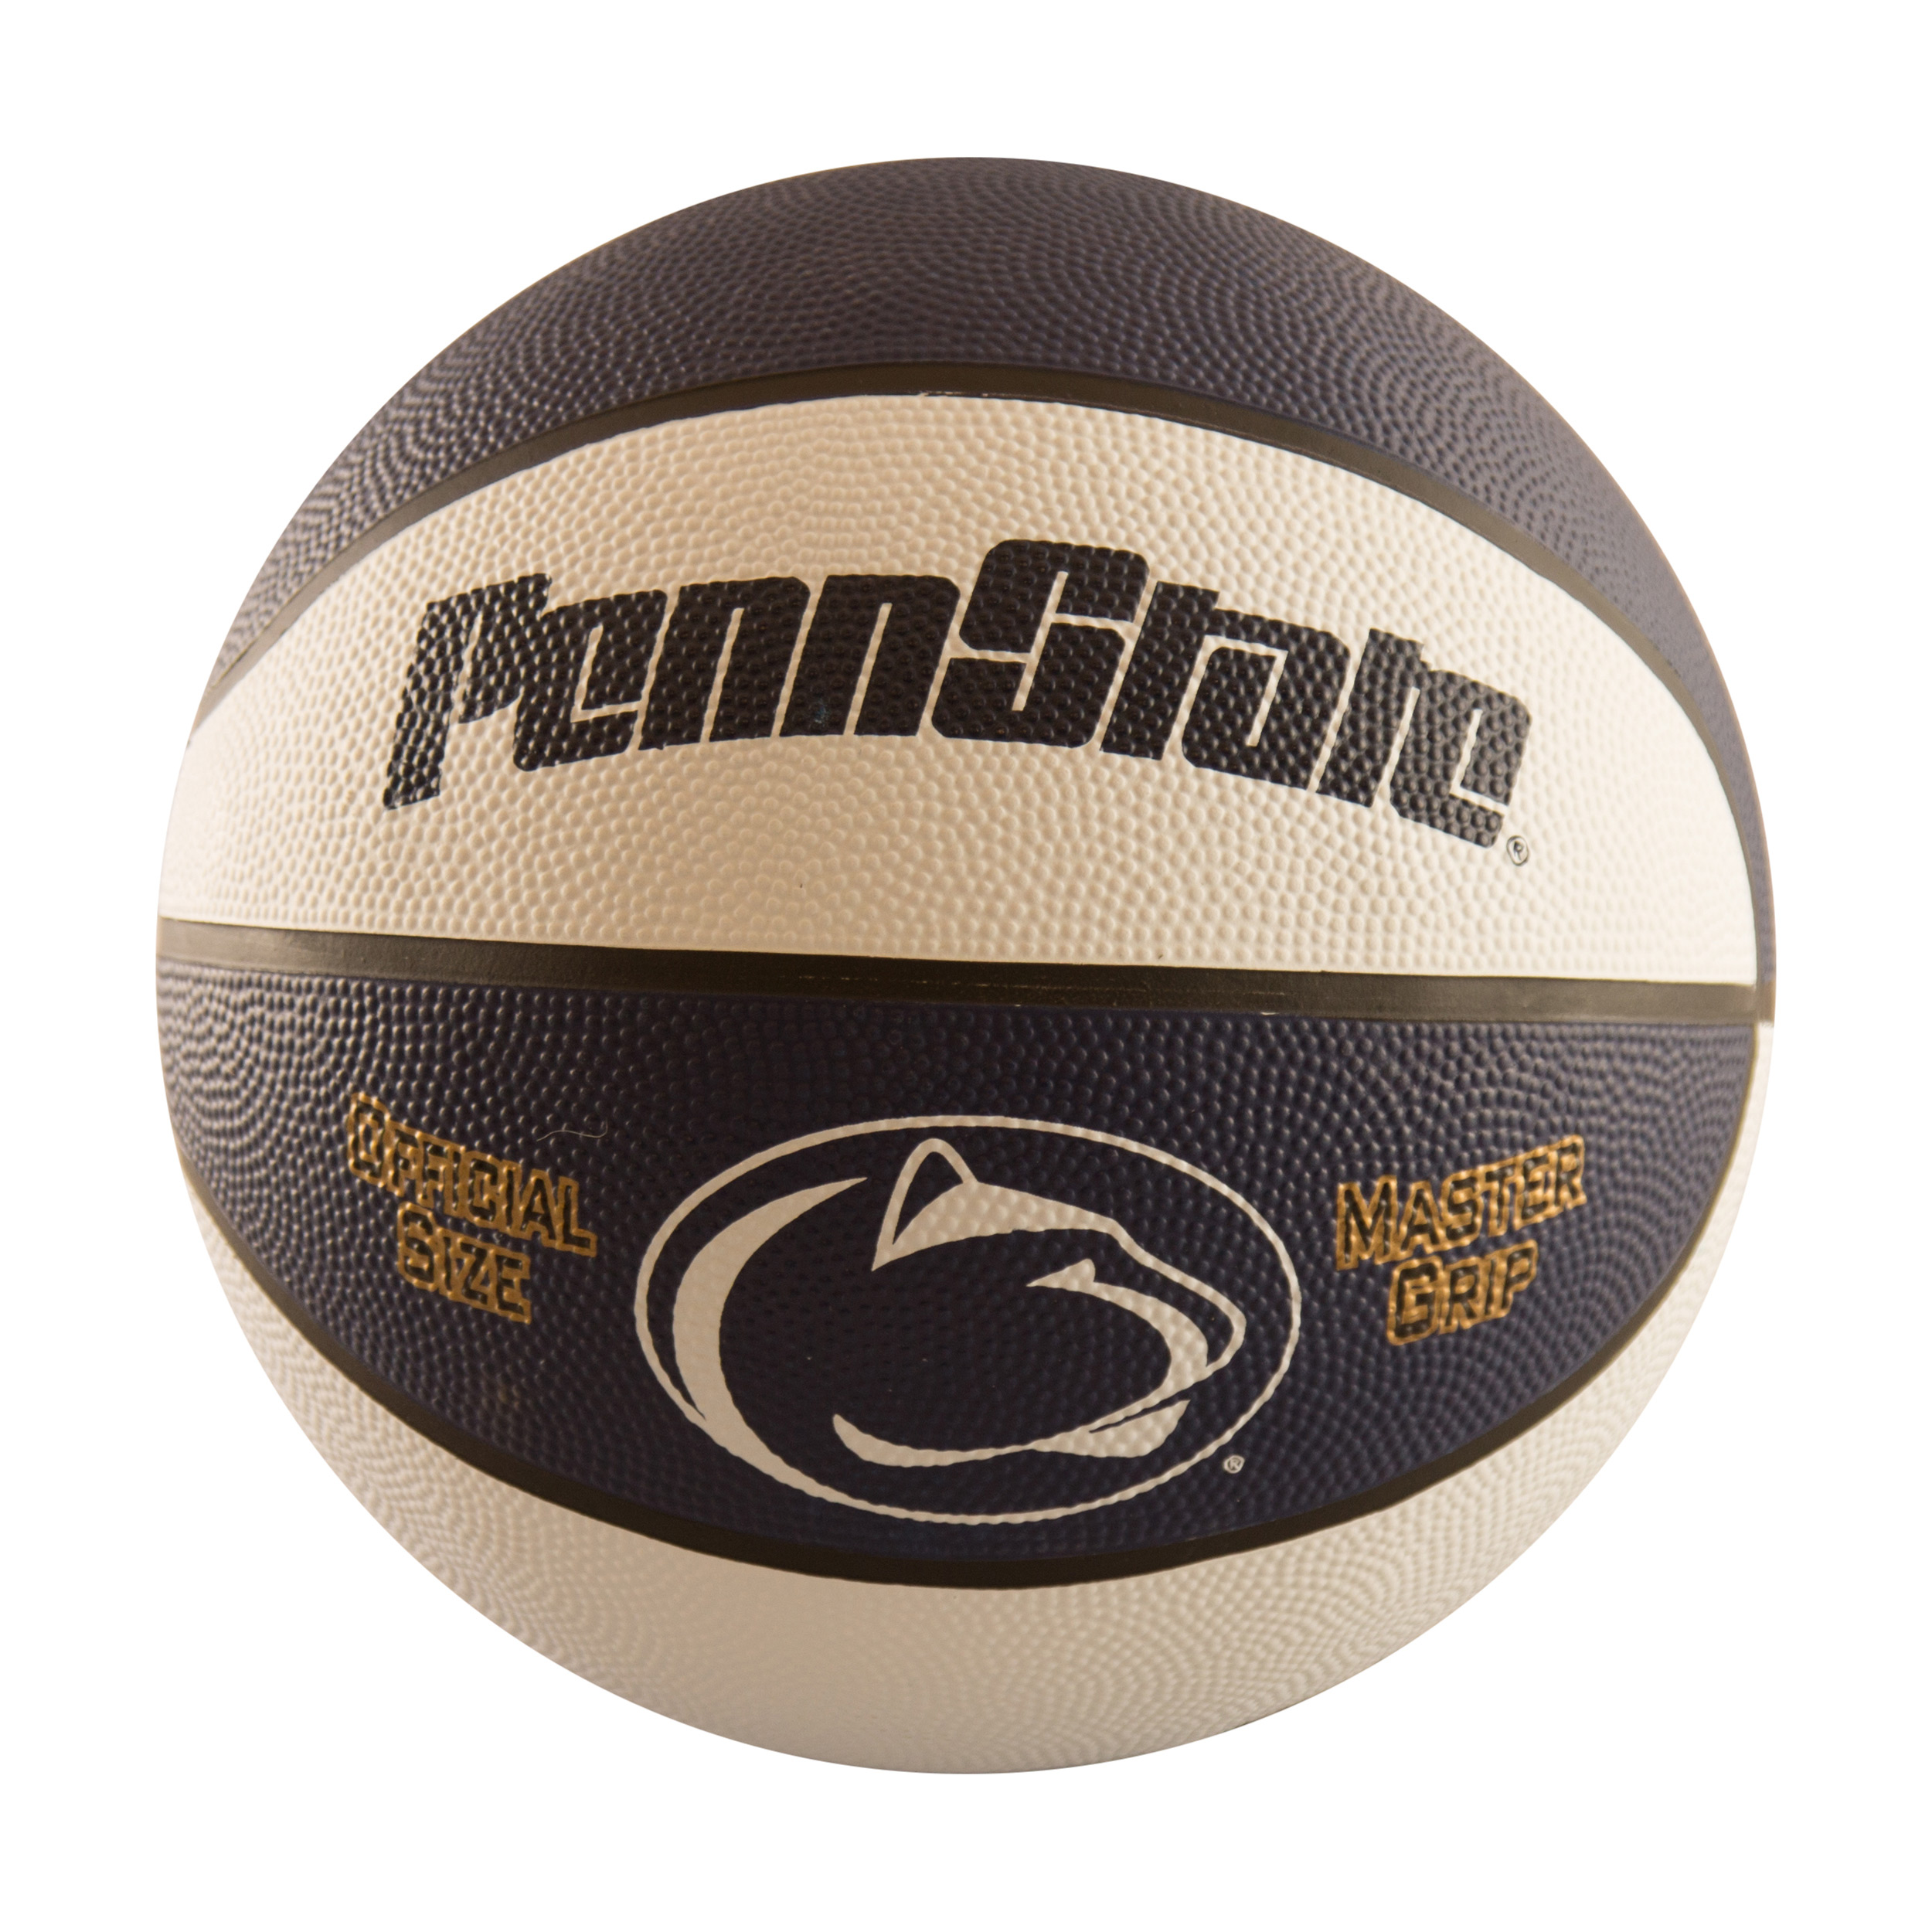 Official NCAA Rubber Full Size Basketball by GameMaster